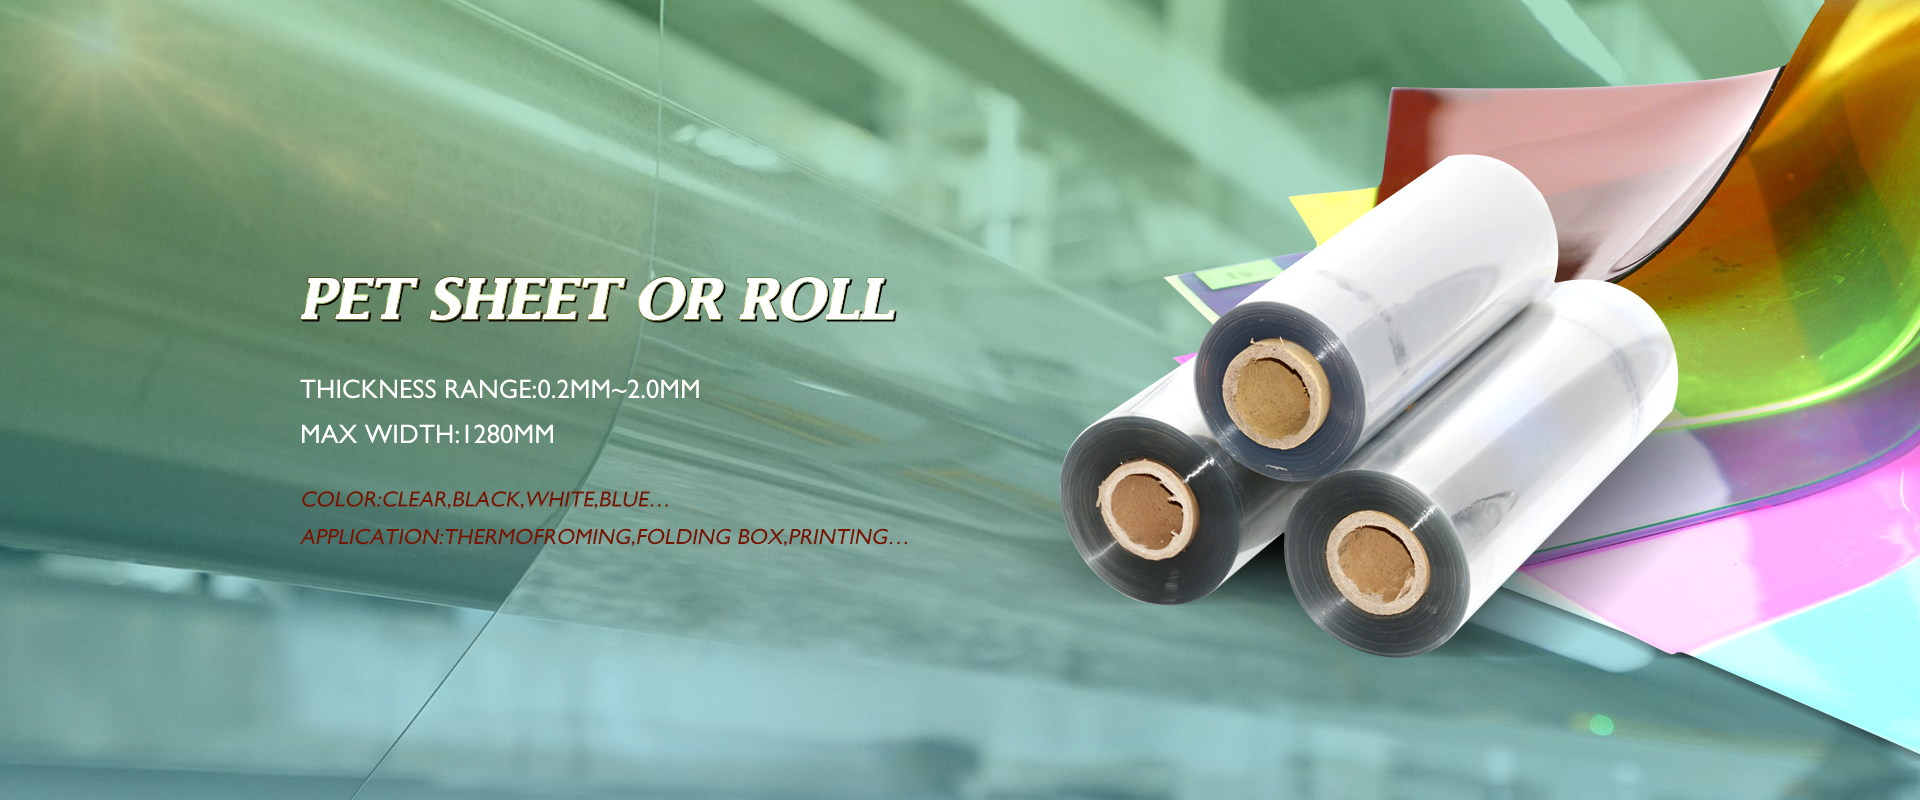 PVC SHEET OR ROLL